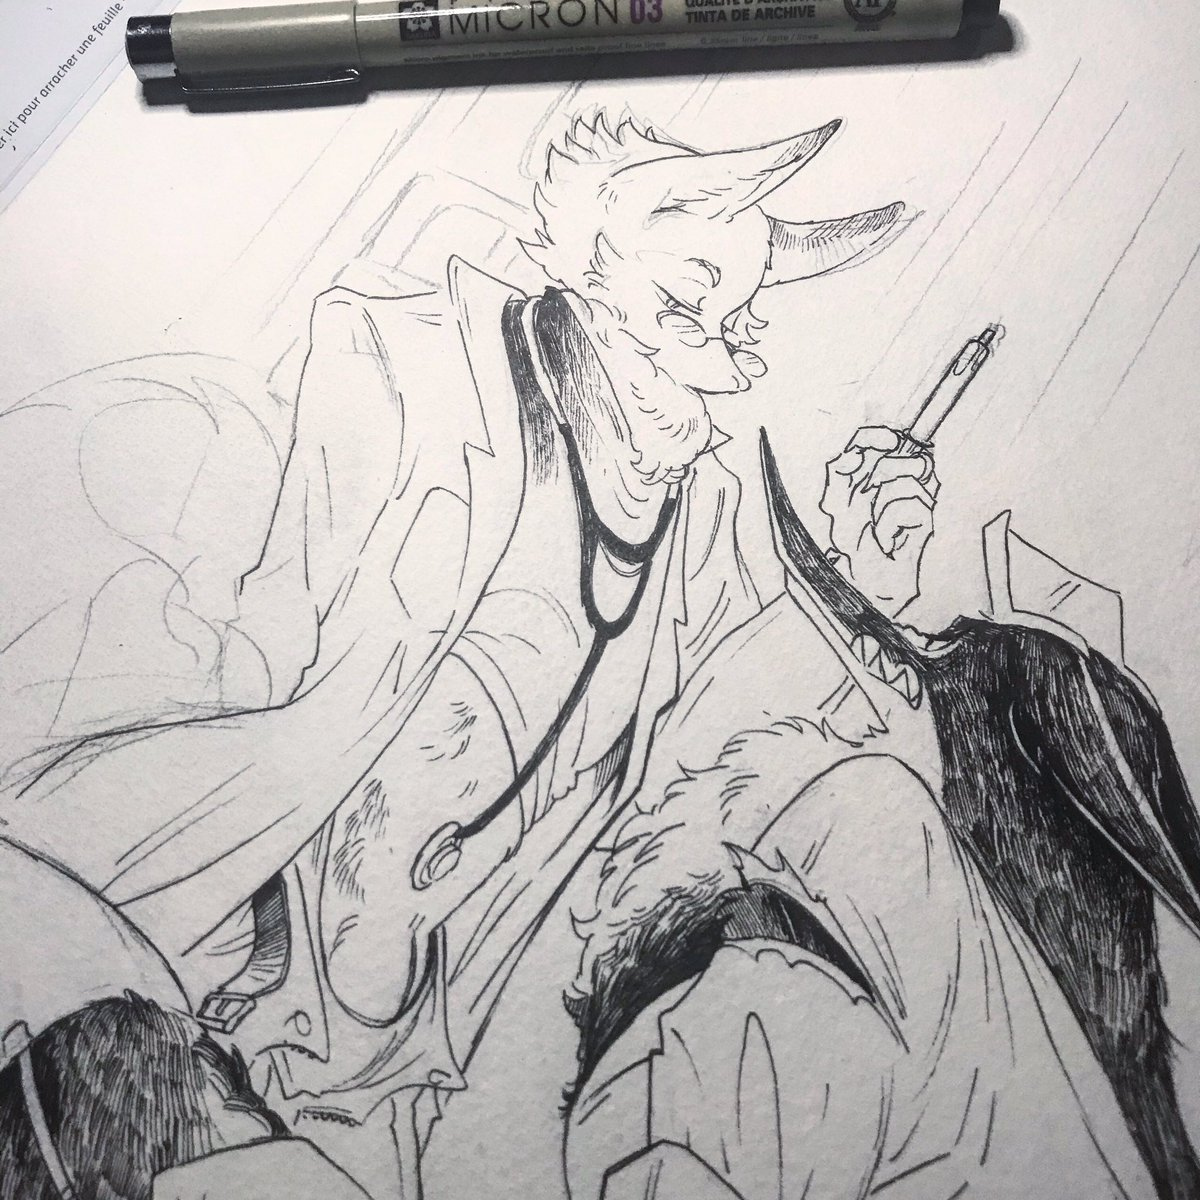 [WIP] Traditional ink  Tools: @sakuraofamerica Micron + @Hahnemuehle paper  . #ink #dailydrawing #wip #wolf #fox #furry #hellostranger <br>http://pic.twitter.com/cZ35LcUWc9